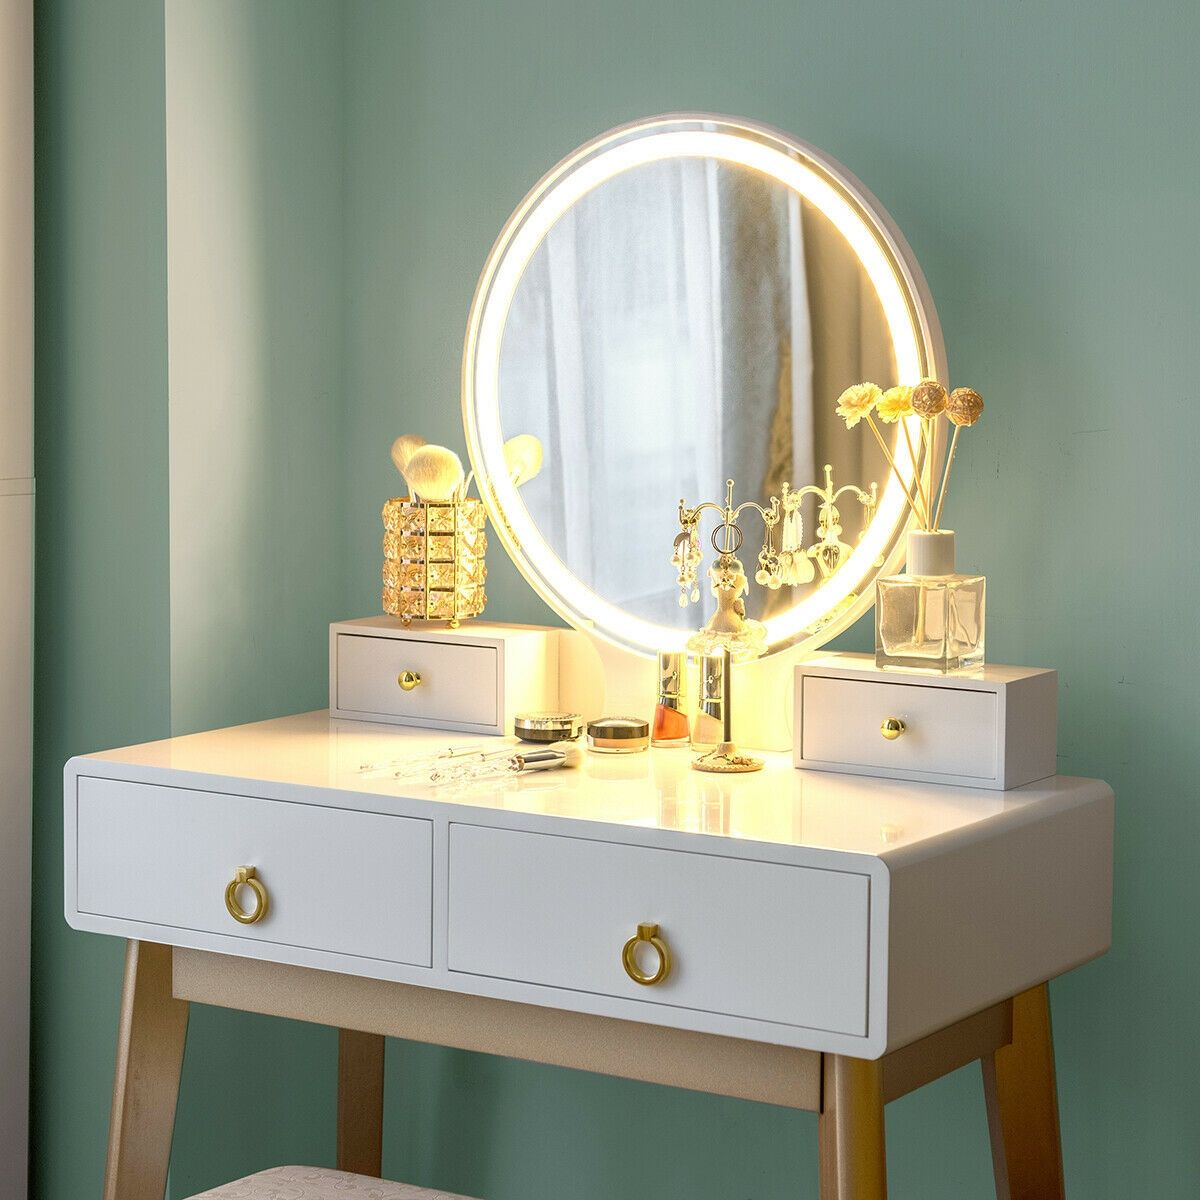 27+ Jewelry and makeup vanity table info